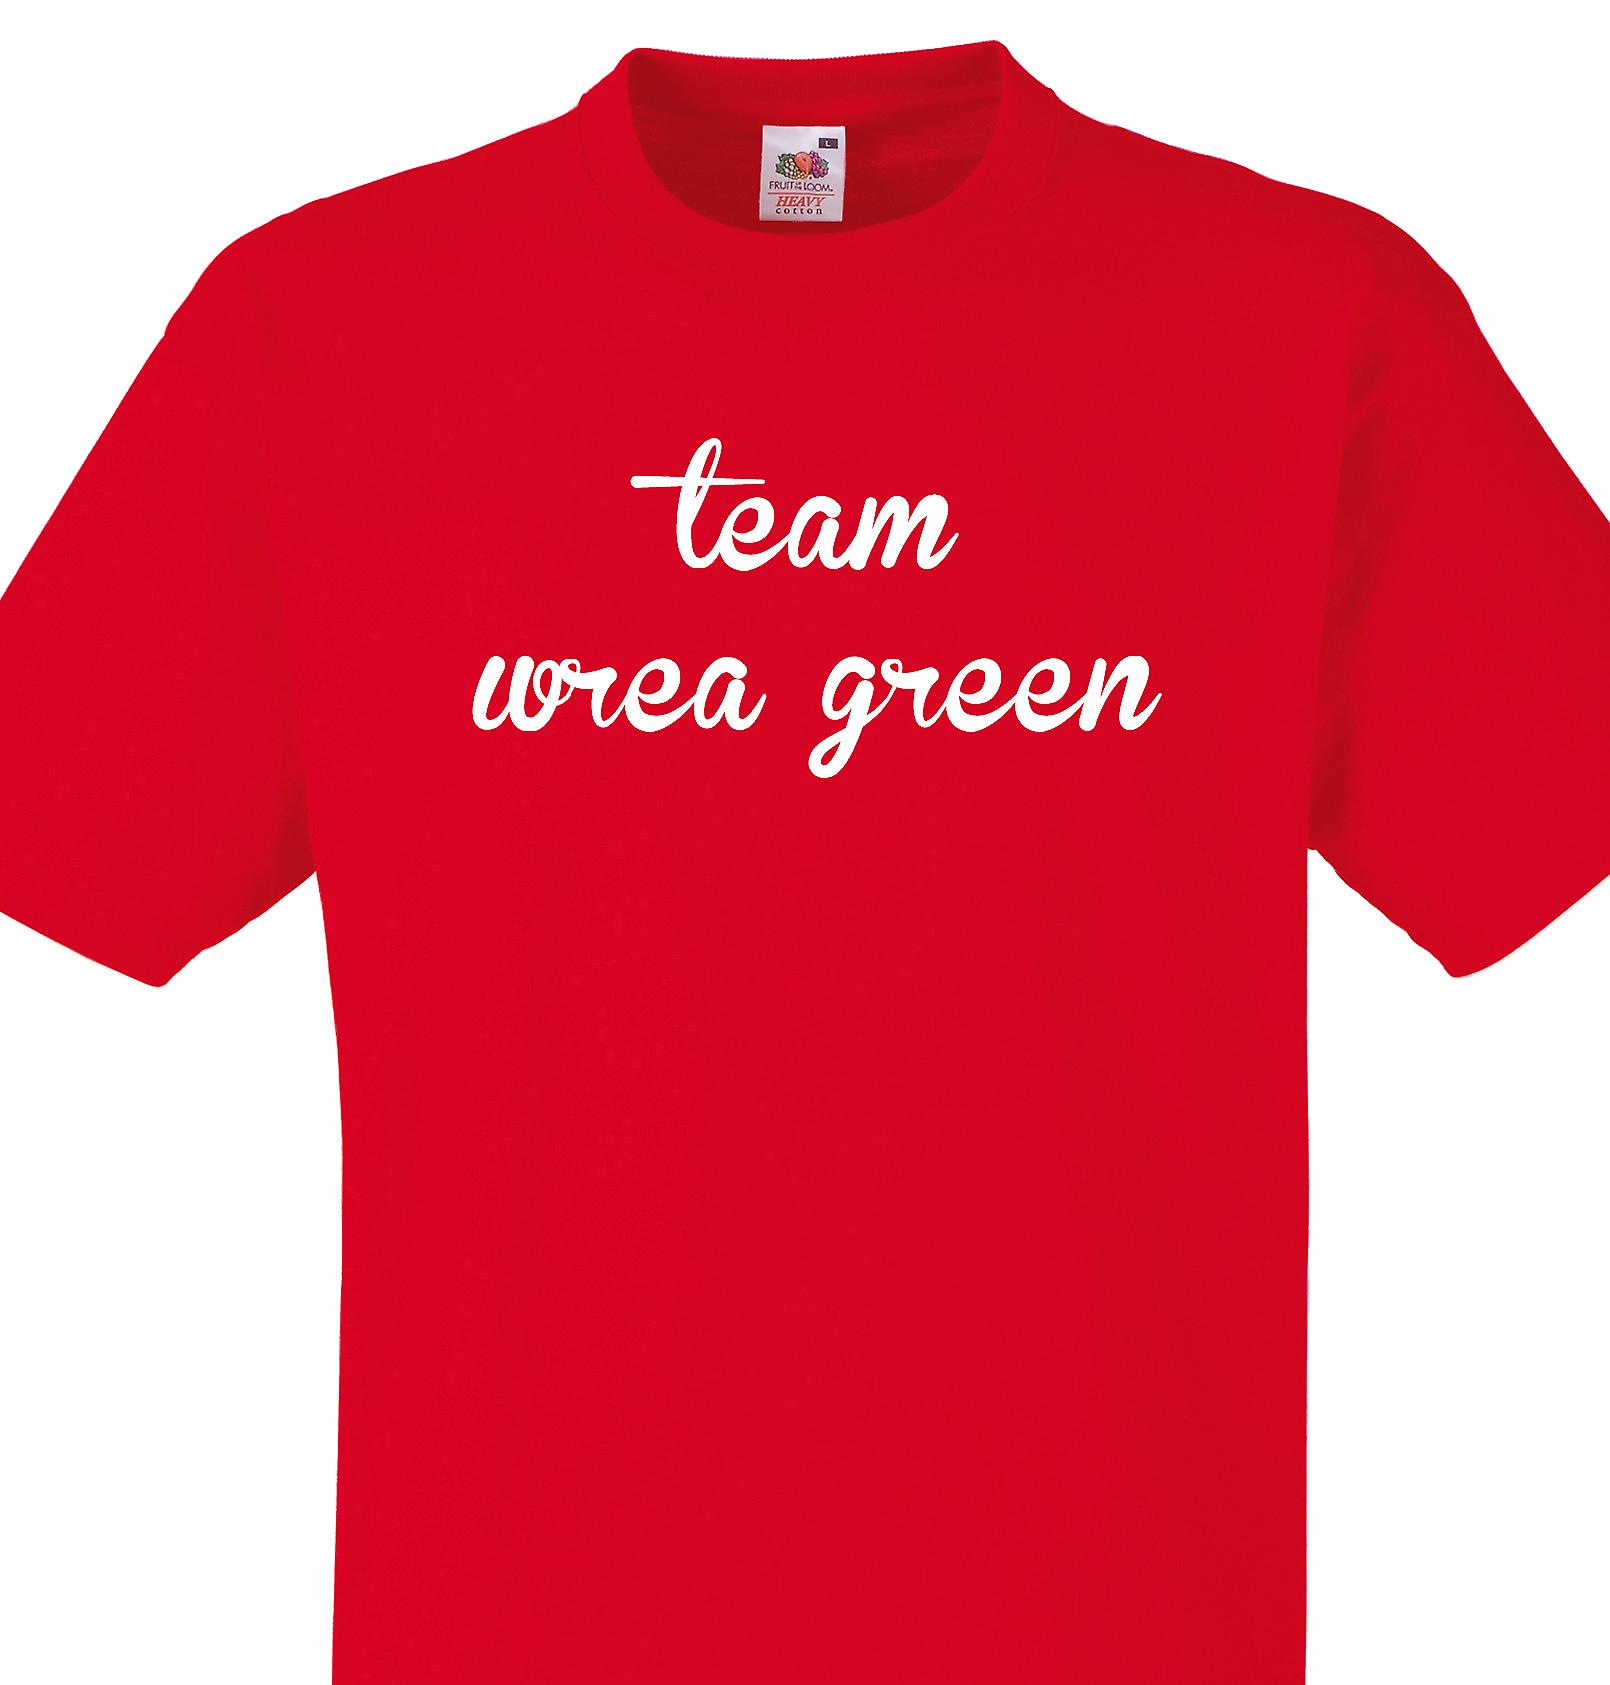 Team Wrea green Red T shirt